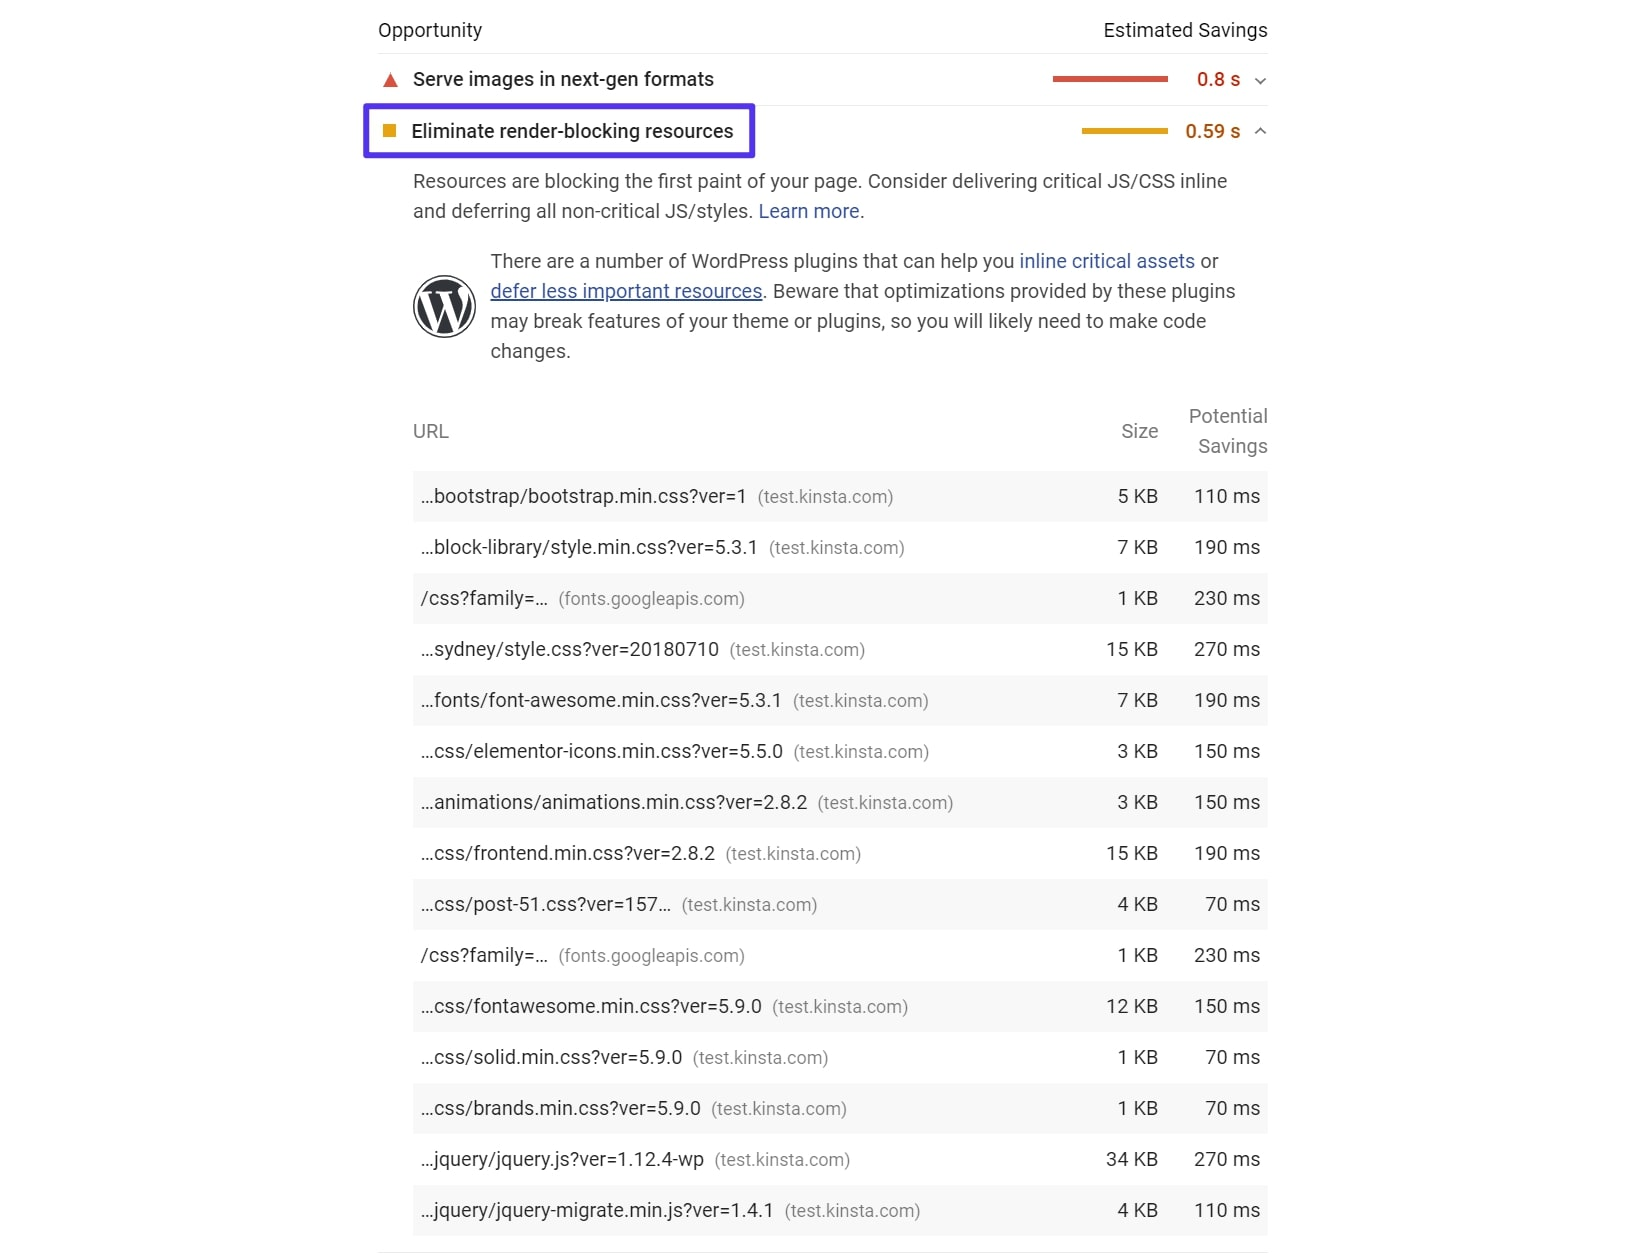 Die Render-Blocking Ressourcen eliminieren Nachricht in PageSpeed Insights